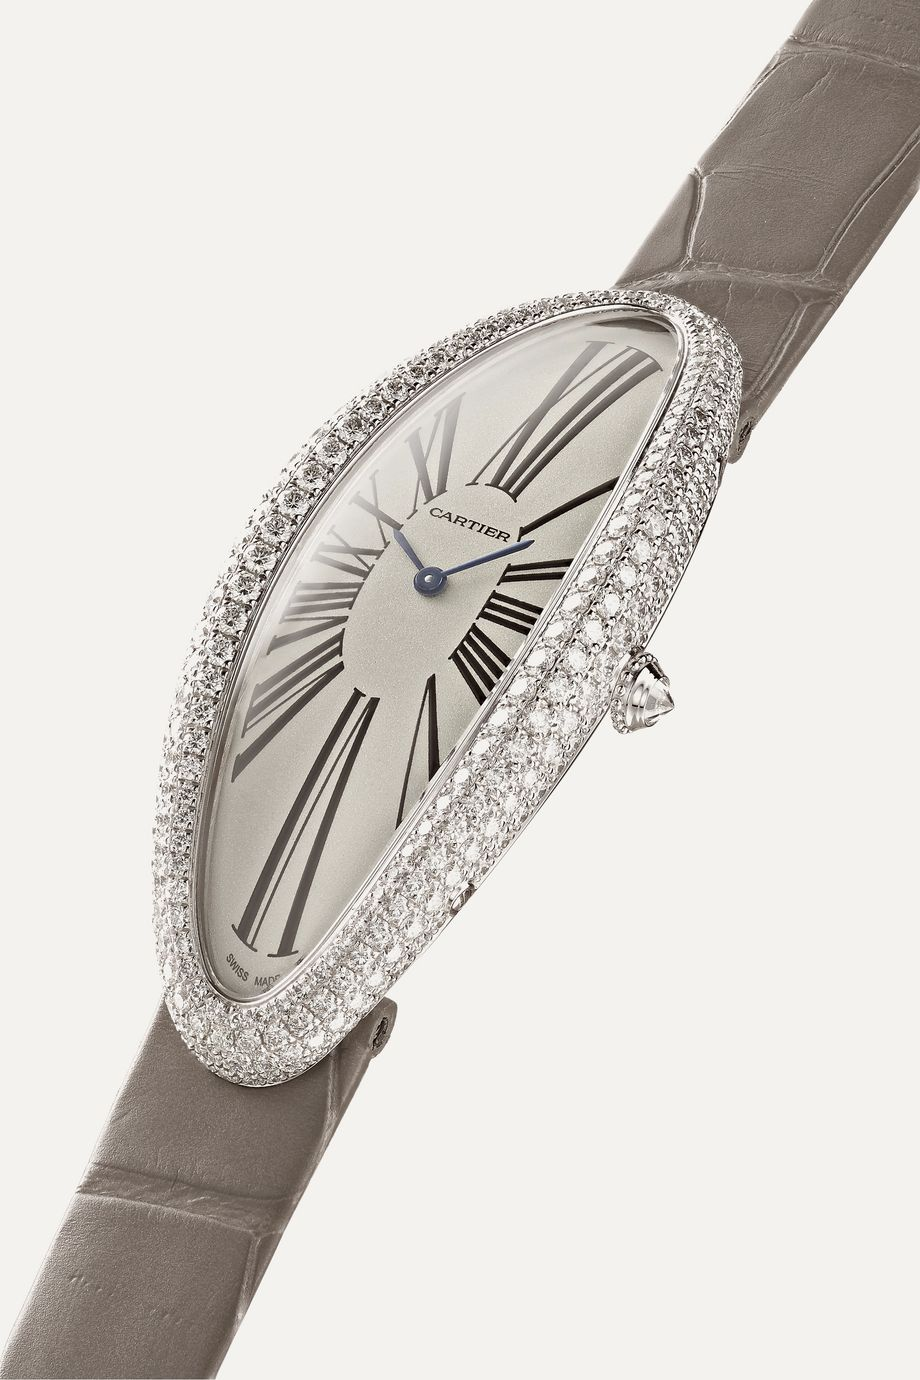 Cartier Baignoire Allongée 23mm extra large rhodium-finish 18-karat white gold, alligator and diamond watch